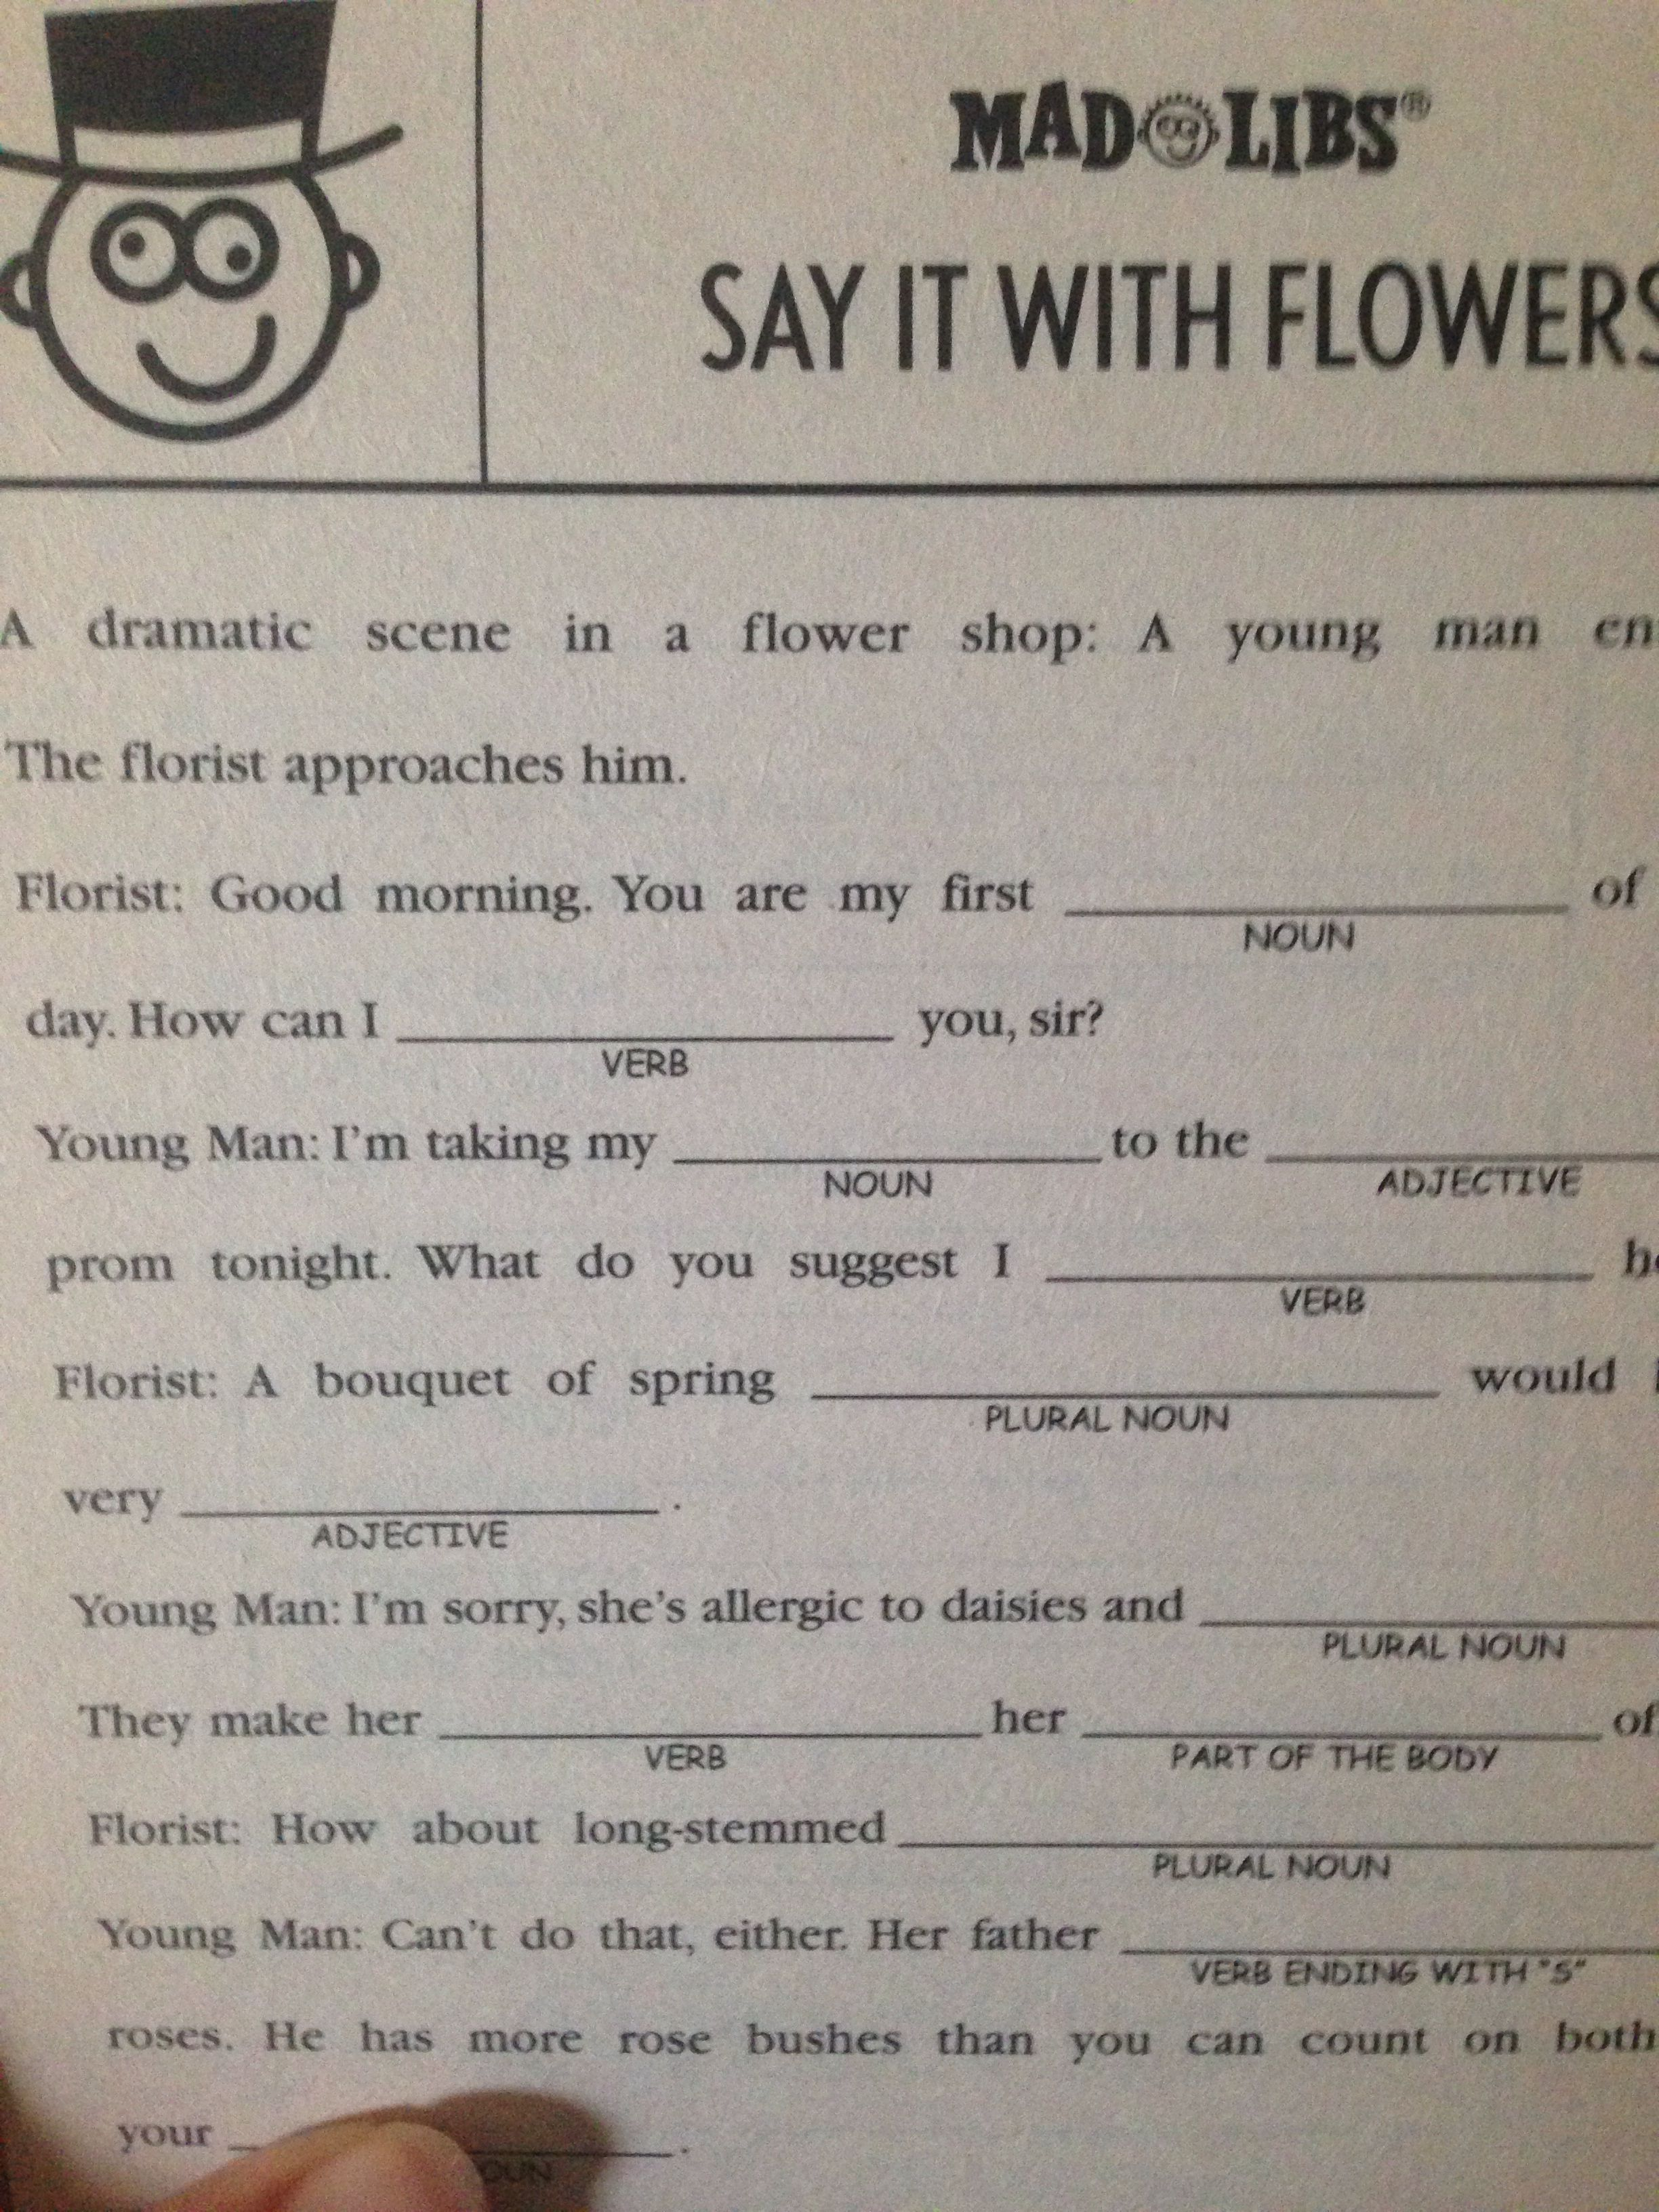 More Mad Libs